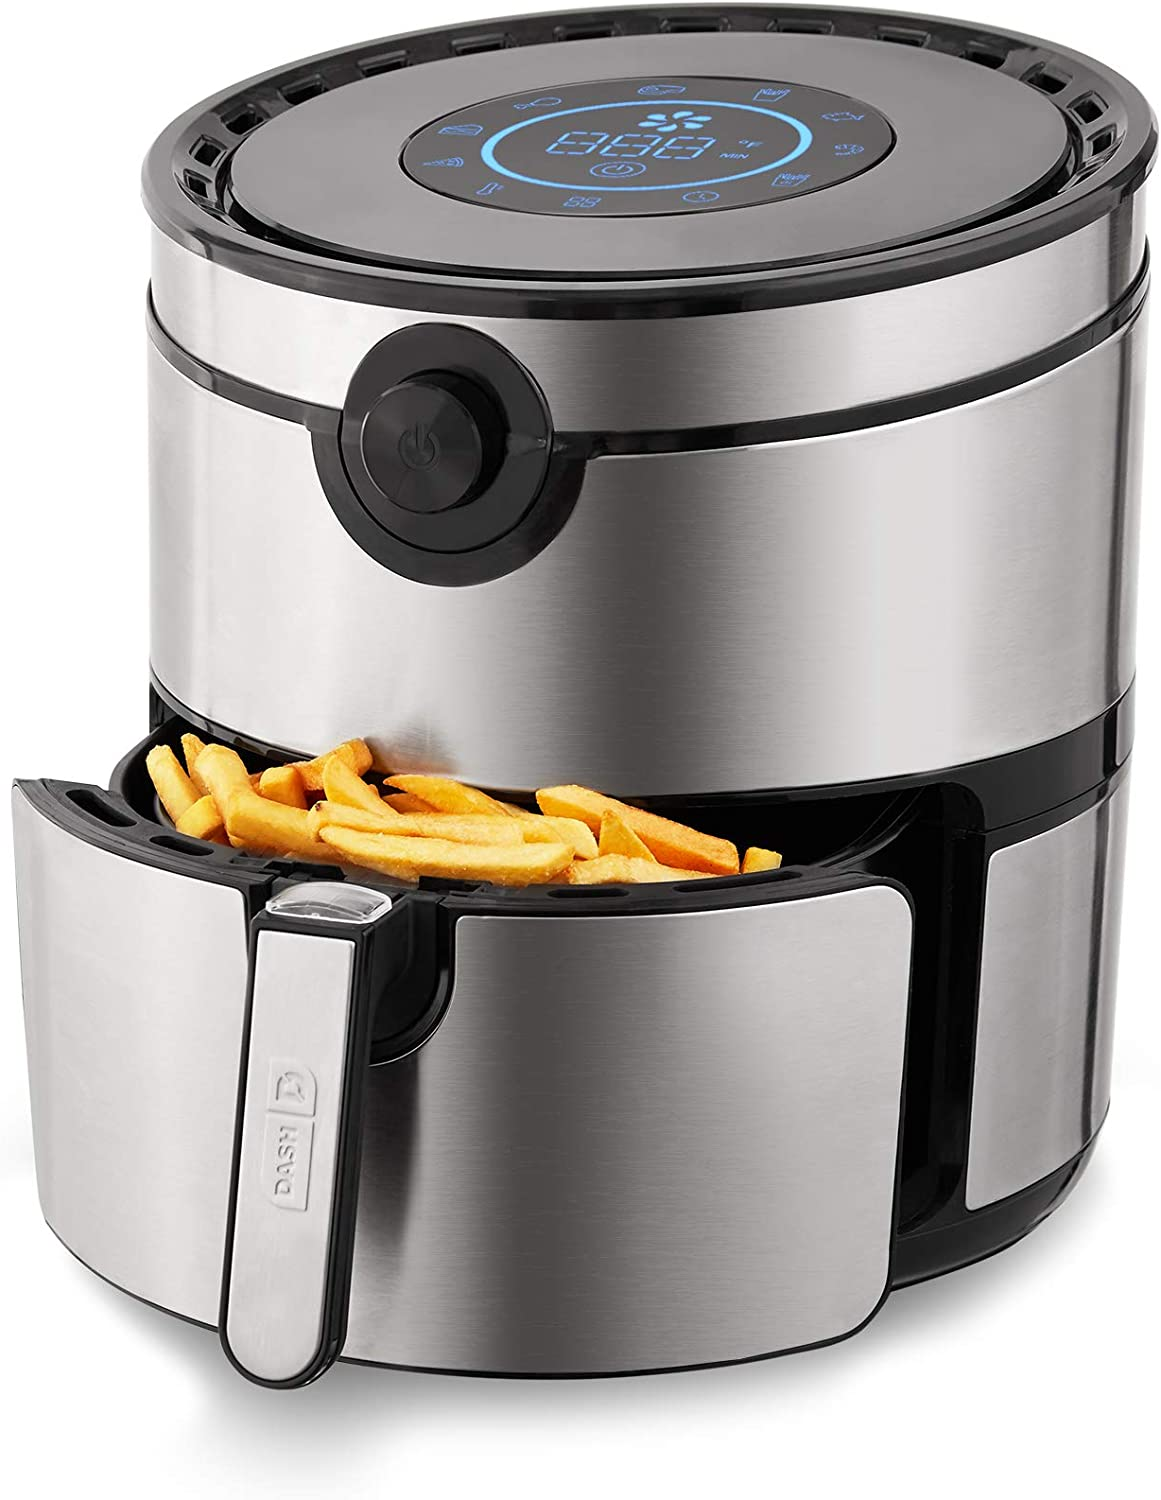 Dash DFAF600GBSS01 AirCrisp Pro Electric Air Fryer + Oven Cooker with Digital Display + 8 Presets, Temperature Control, Non Stick Fry Basket, Recipe Guide + Auto Shut Off Feature, 6qt, Stainless Steel